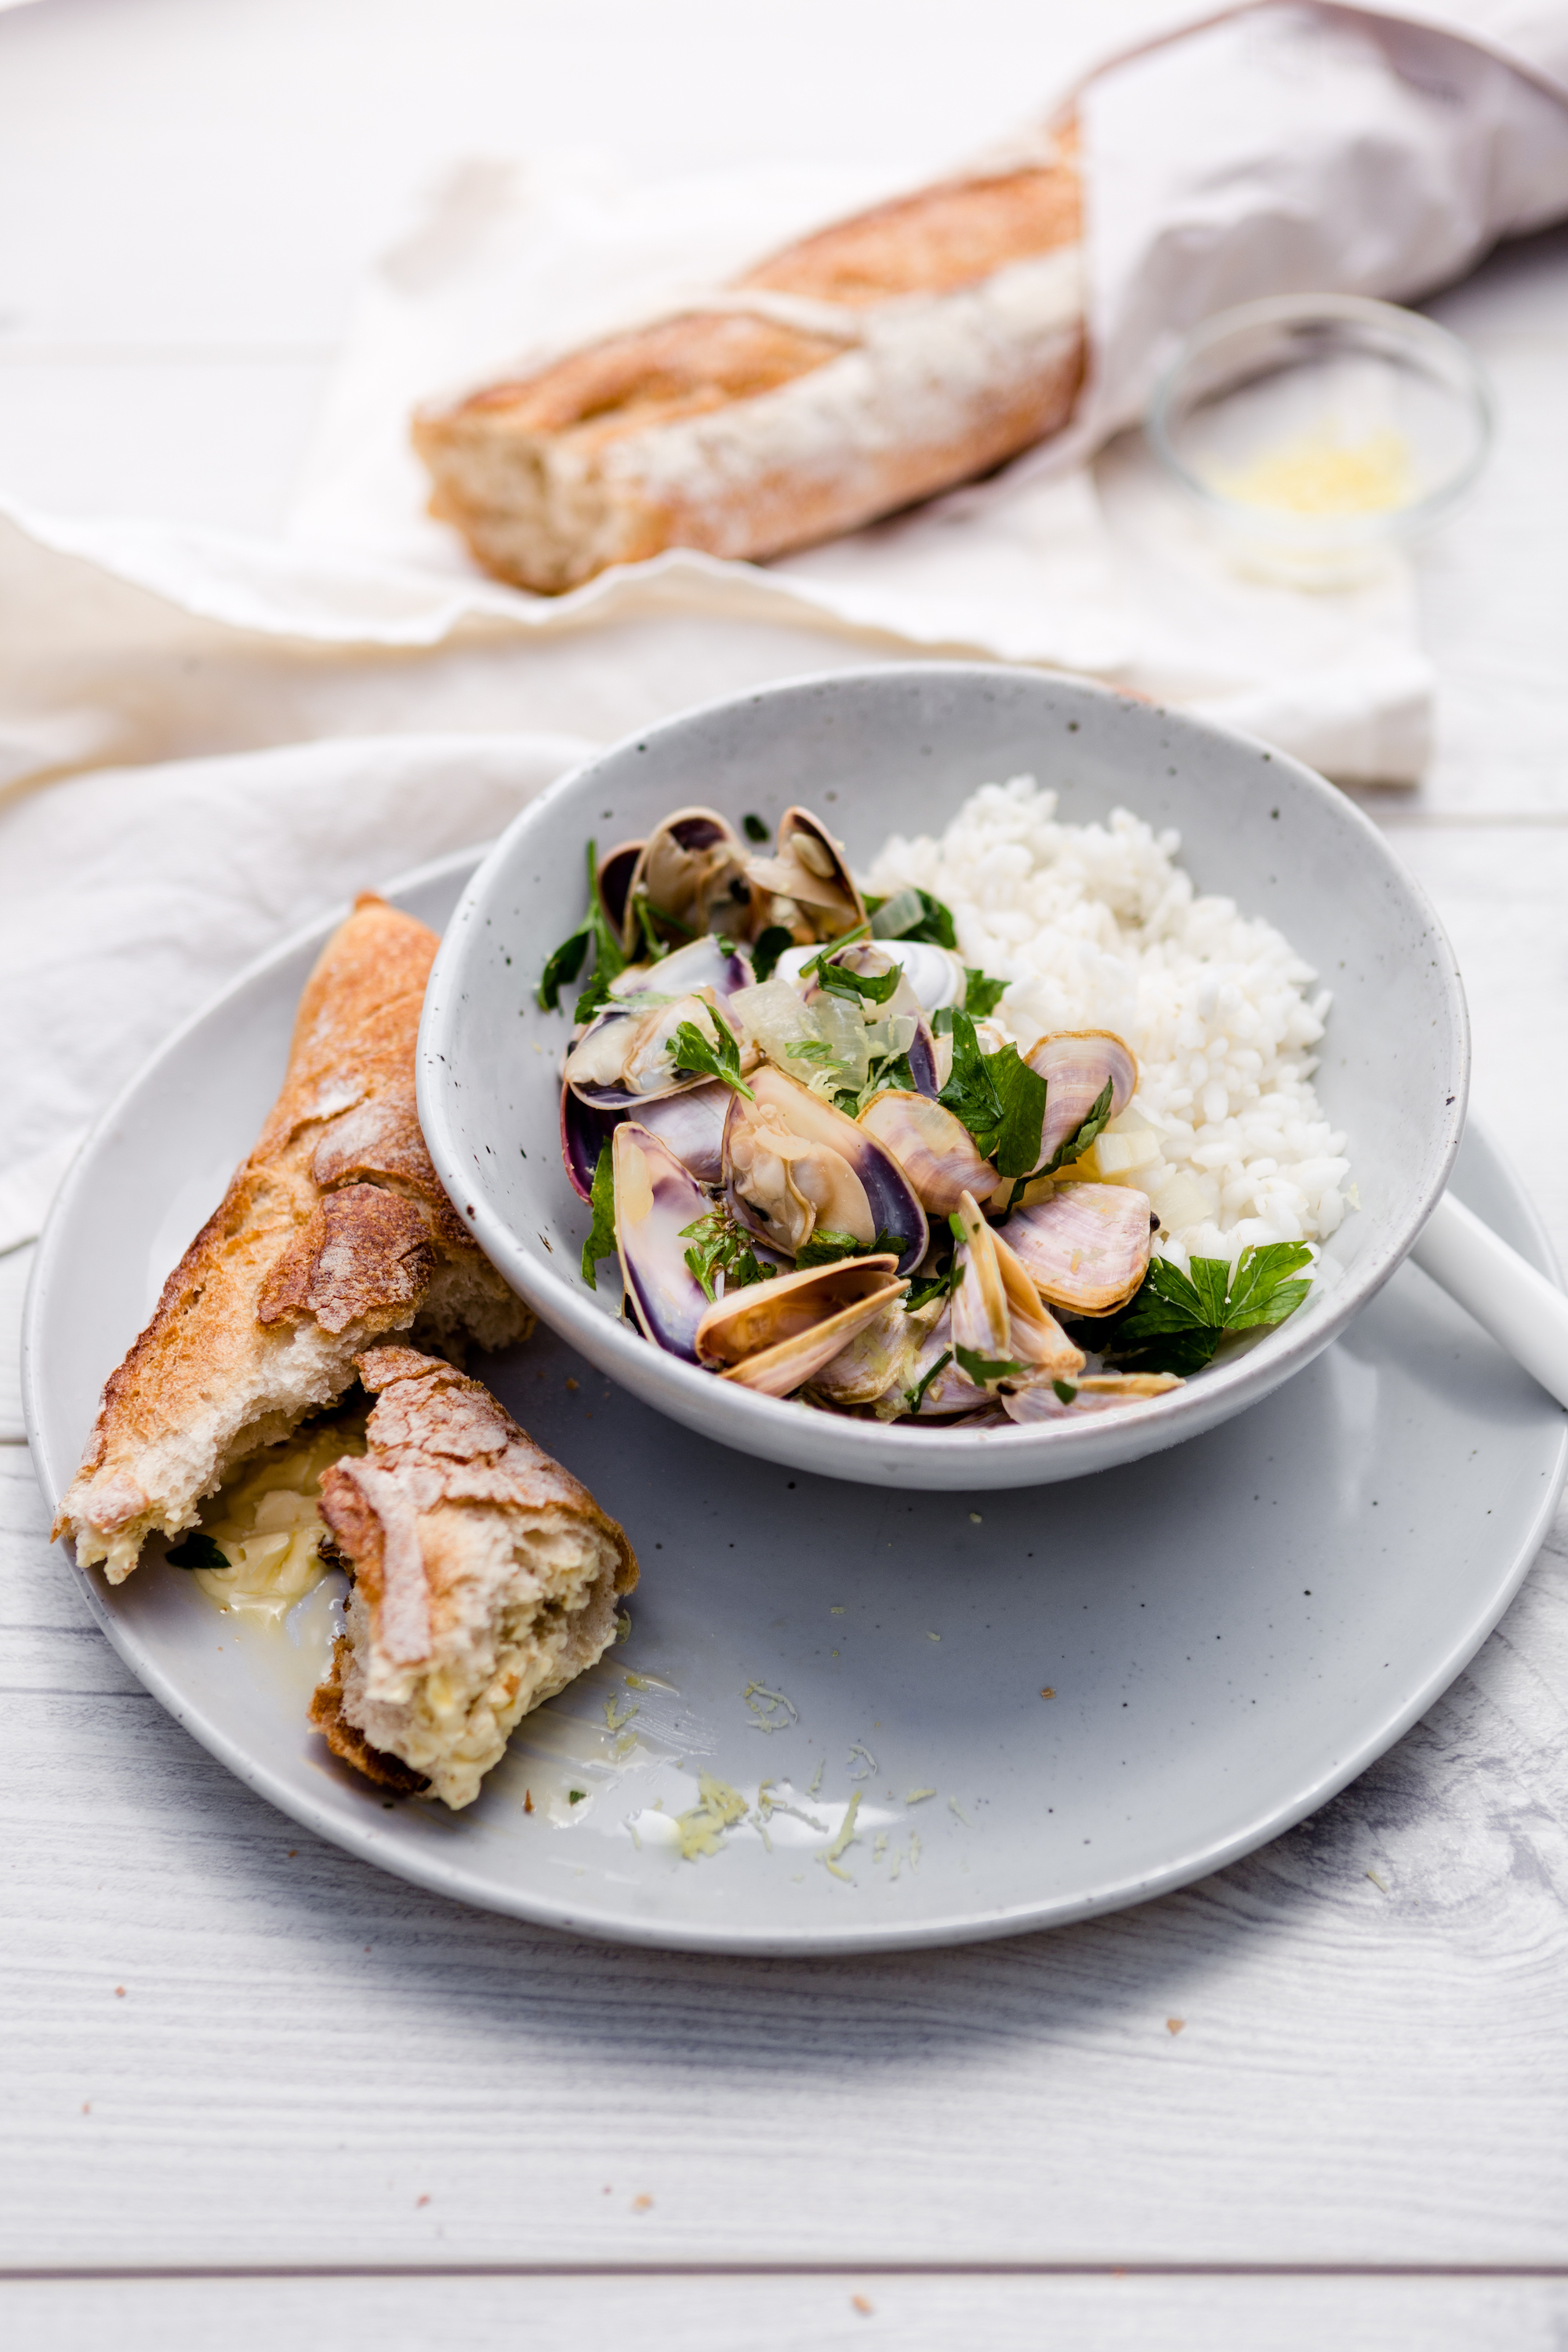 Pipis with rice lemon and parsley